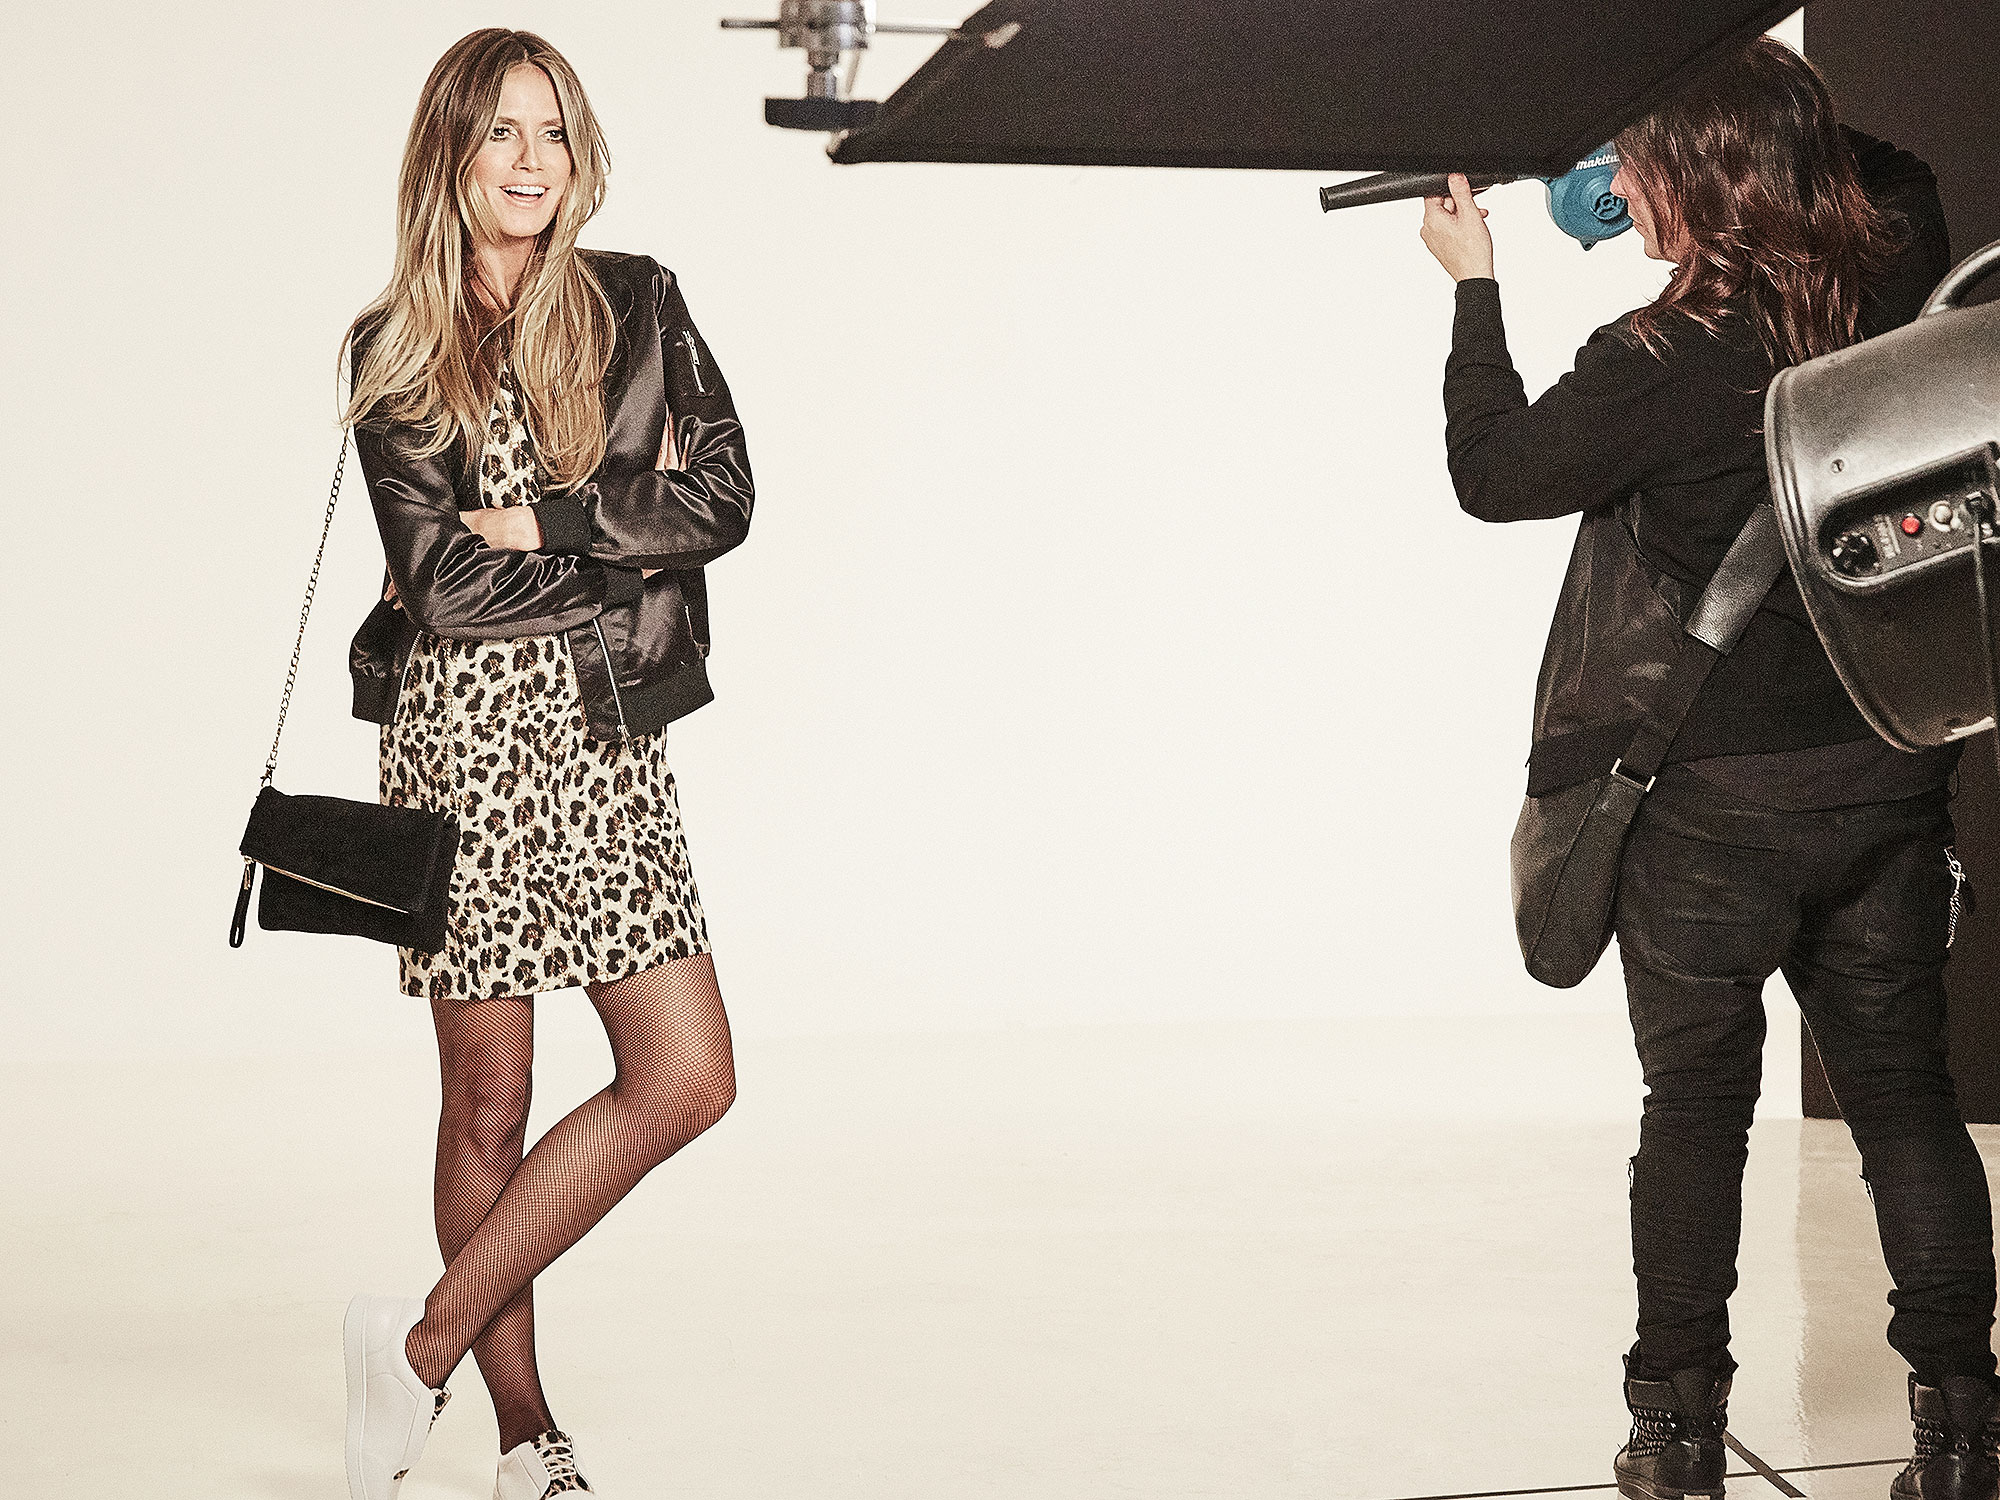 Heidi Klum poses in new clothing collectionCredit: Rankin/Lidl